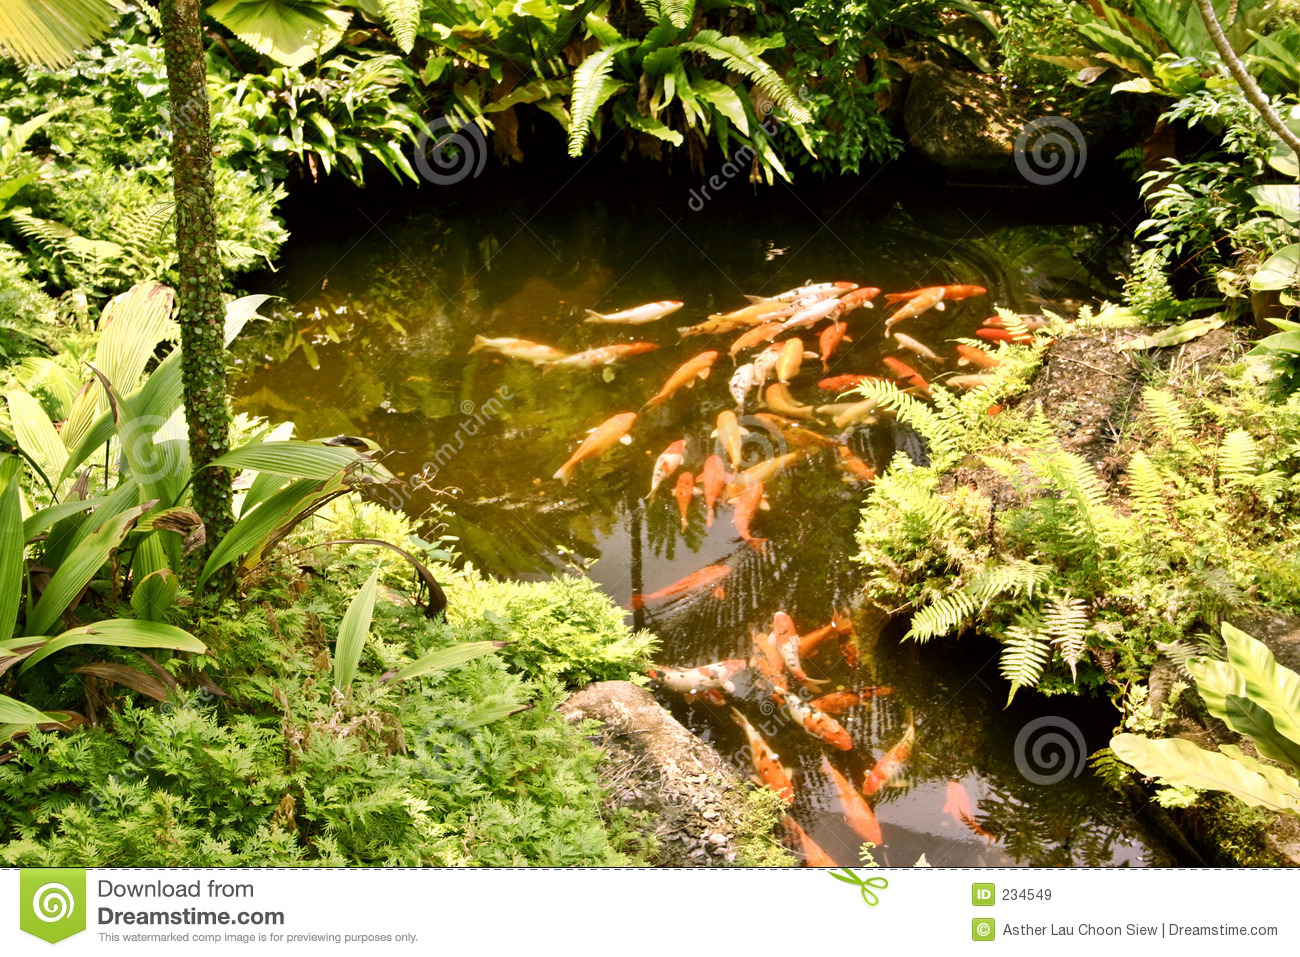 Koi carp in pond royalty free stock images image 234549 for Koi carp fish pond